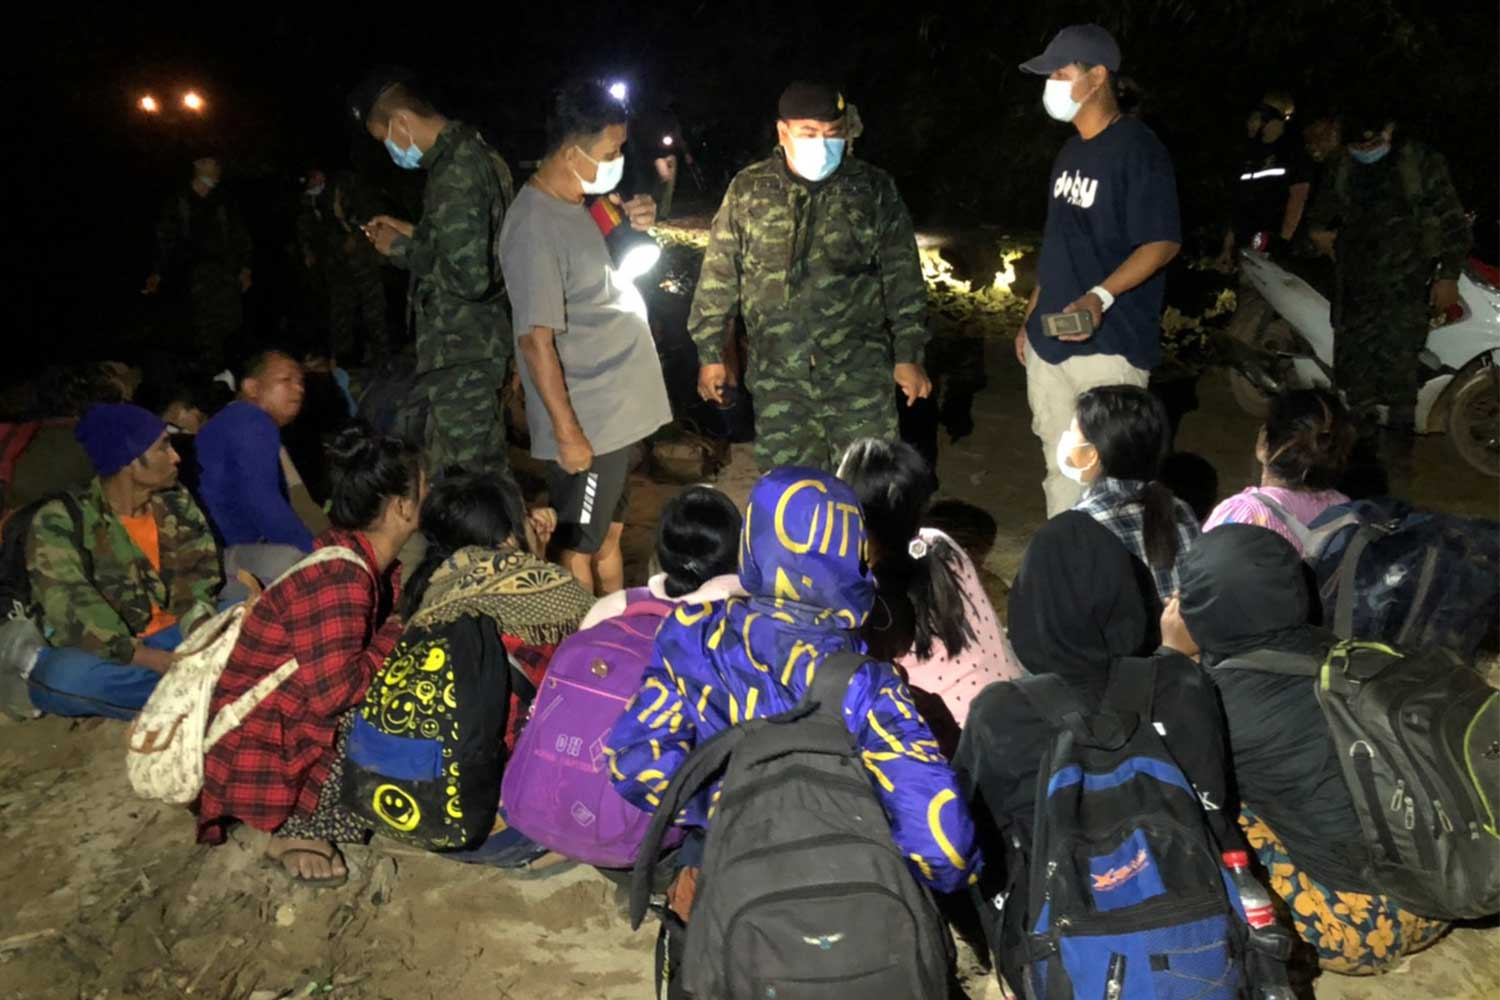 Officers question Myanmar nationals found hiding in a forested area in Sangkhla Buri district of Kanchanaburi late Friday night. (Photo: Piyarat Chongcharoen)